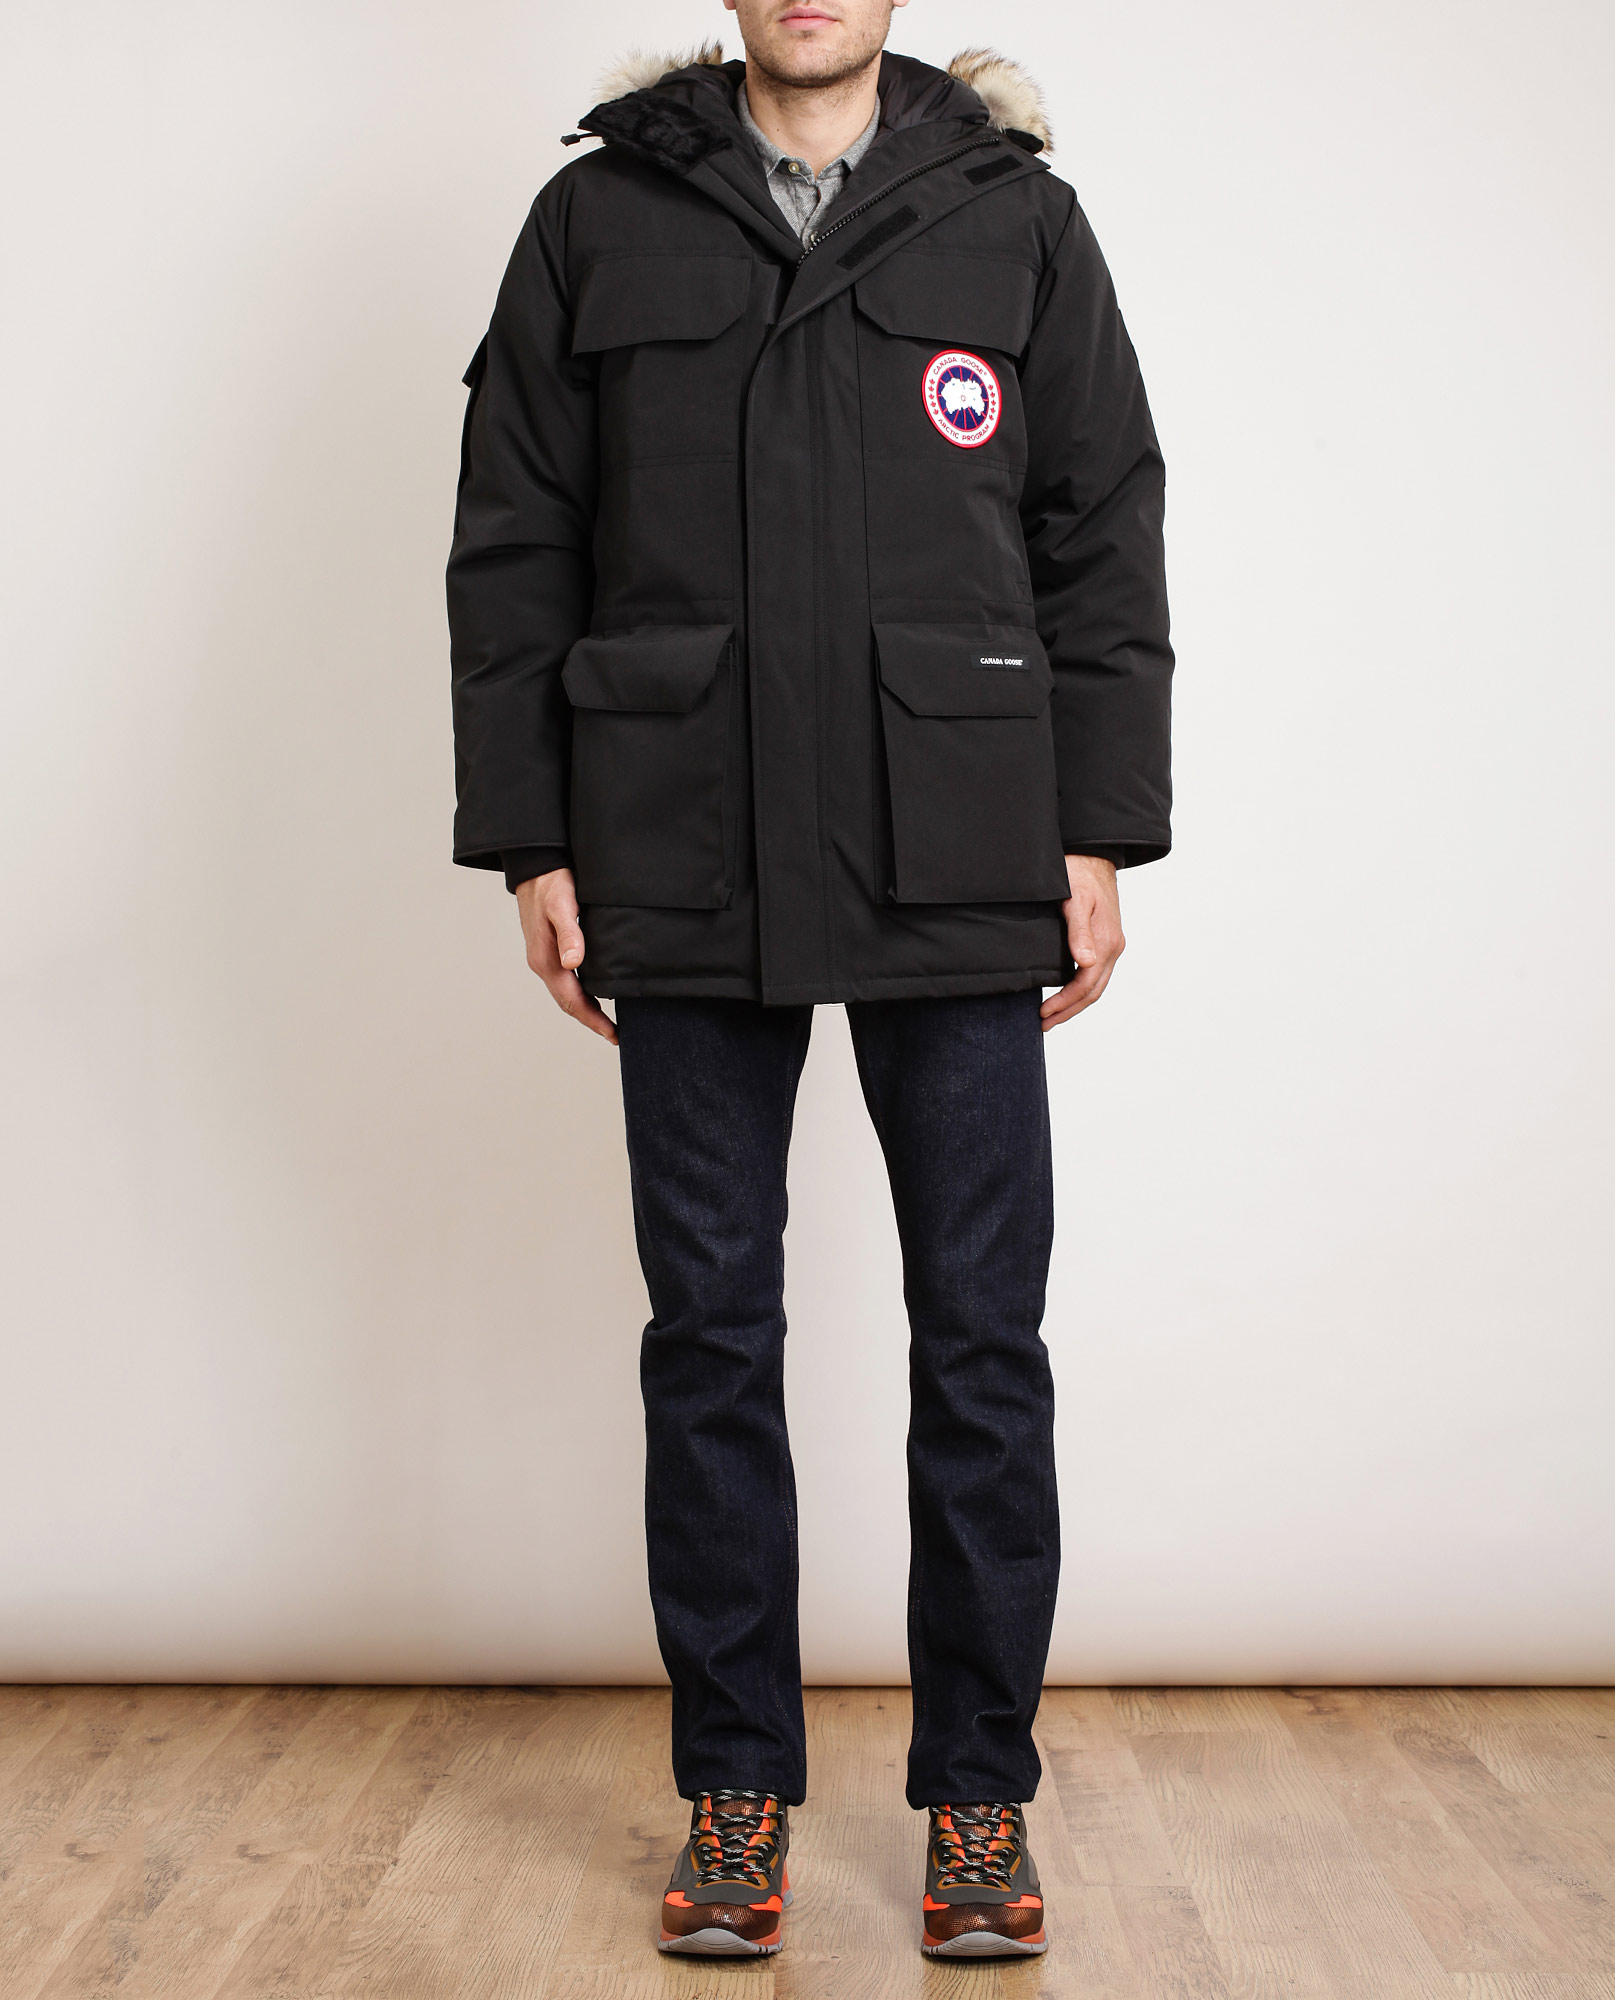 4a489536c3c1 ... order lyst canada goose expedition duck down padded parka in black for  men 0e7c4 20fca